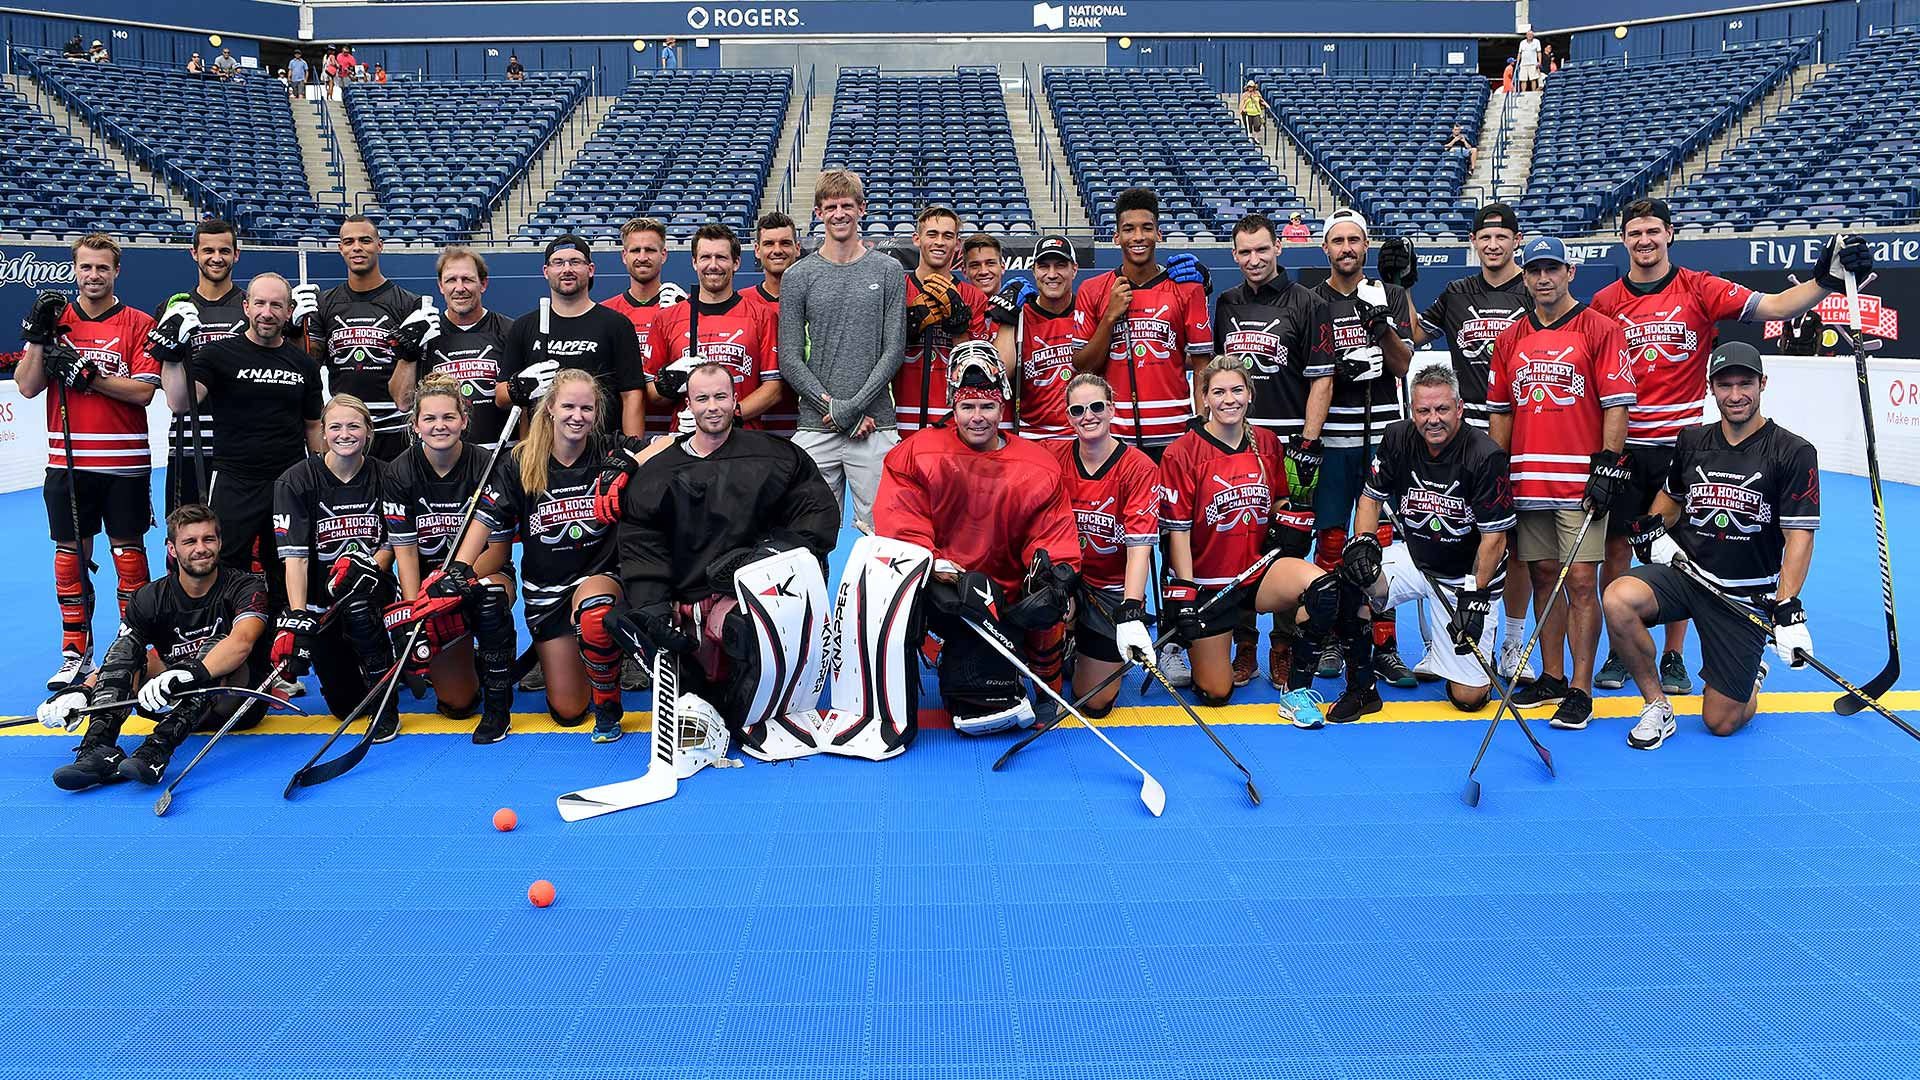 Sportsnet Ball Hockey Challenge presented by Knapper